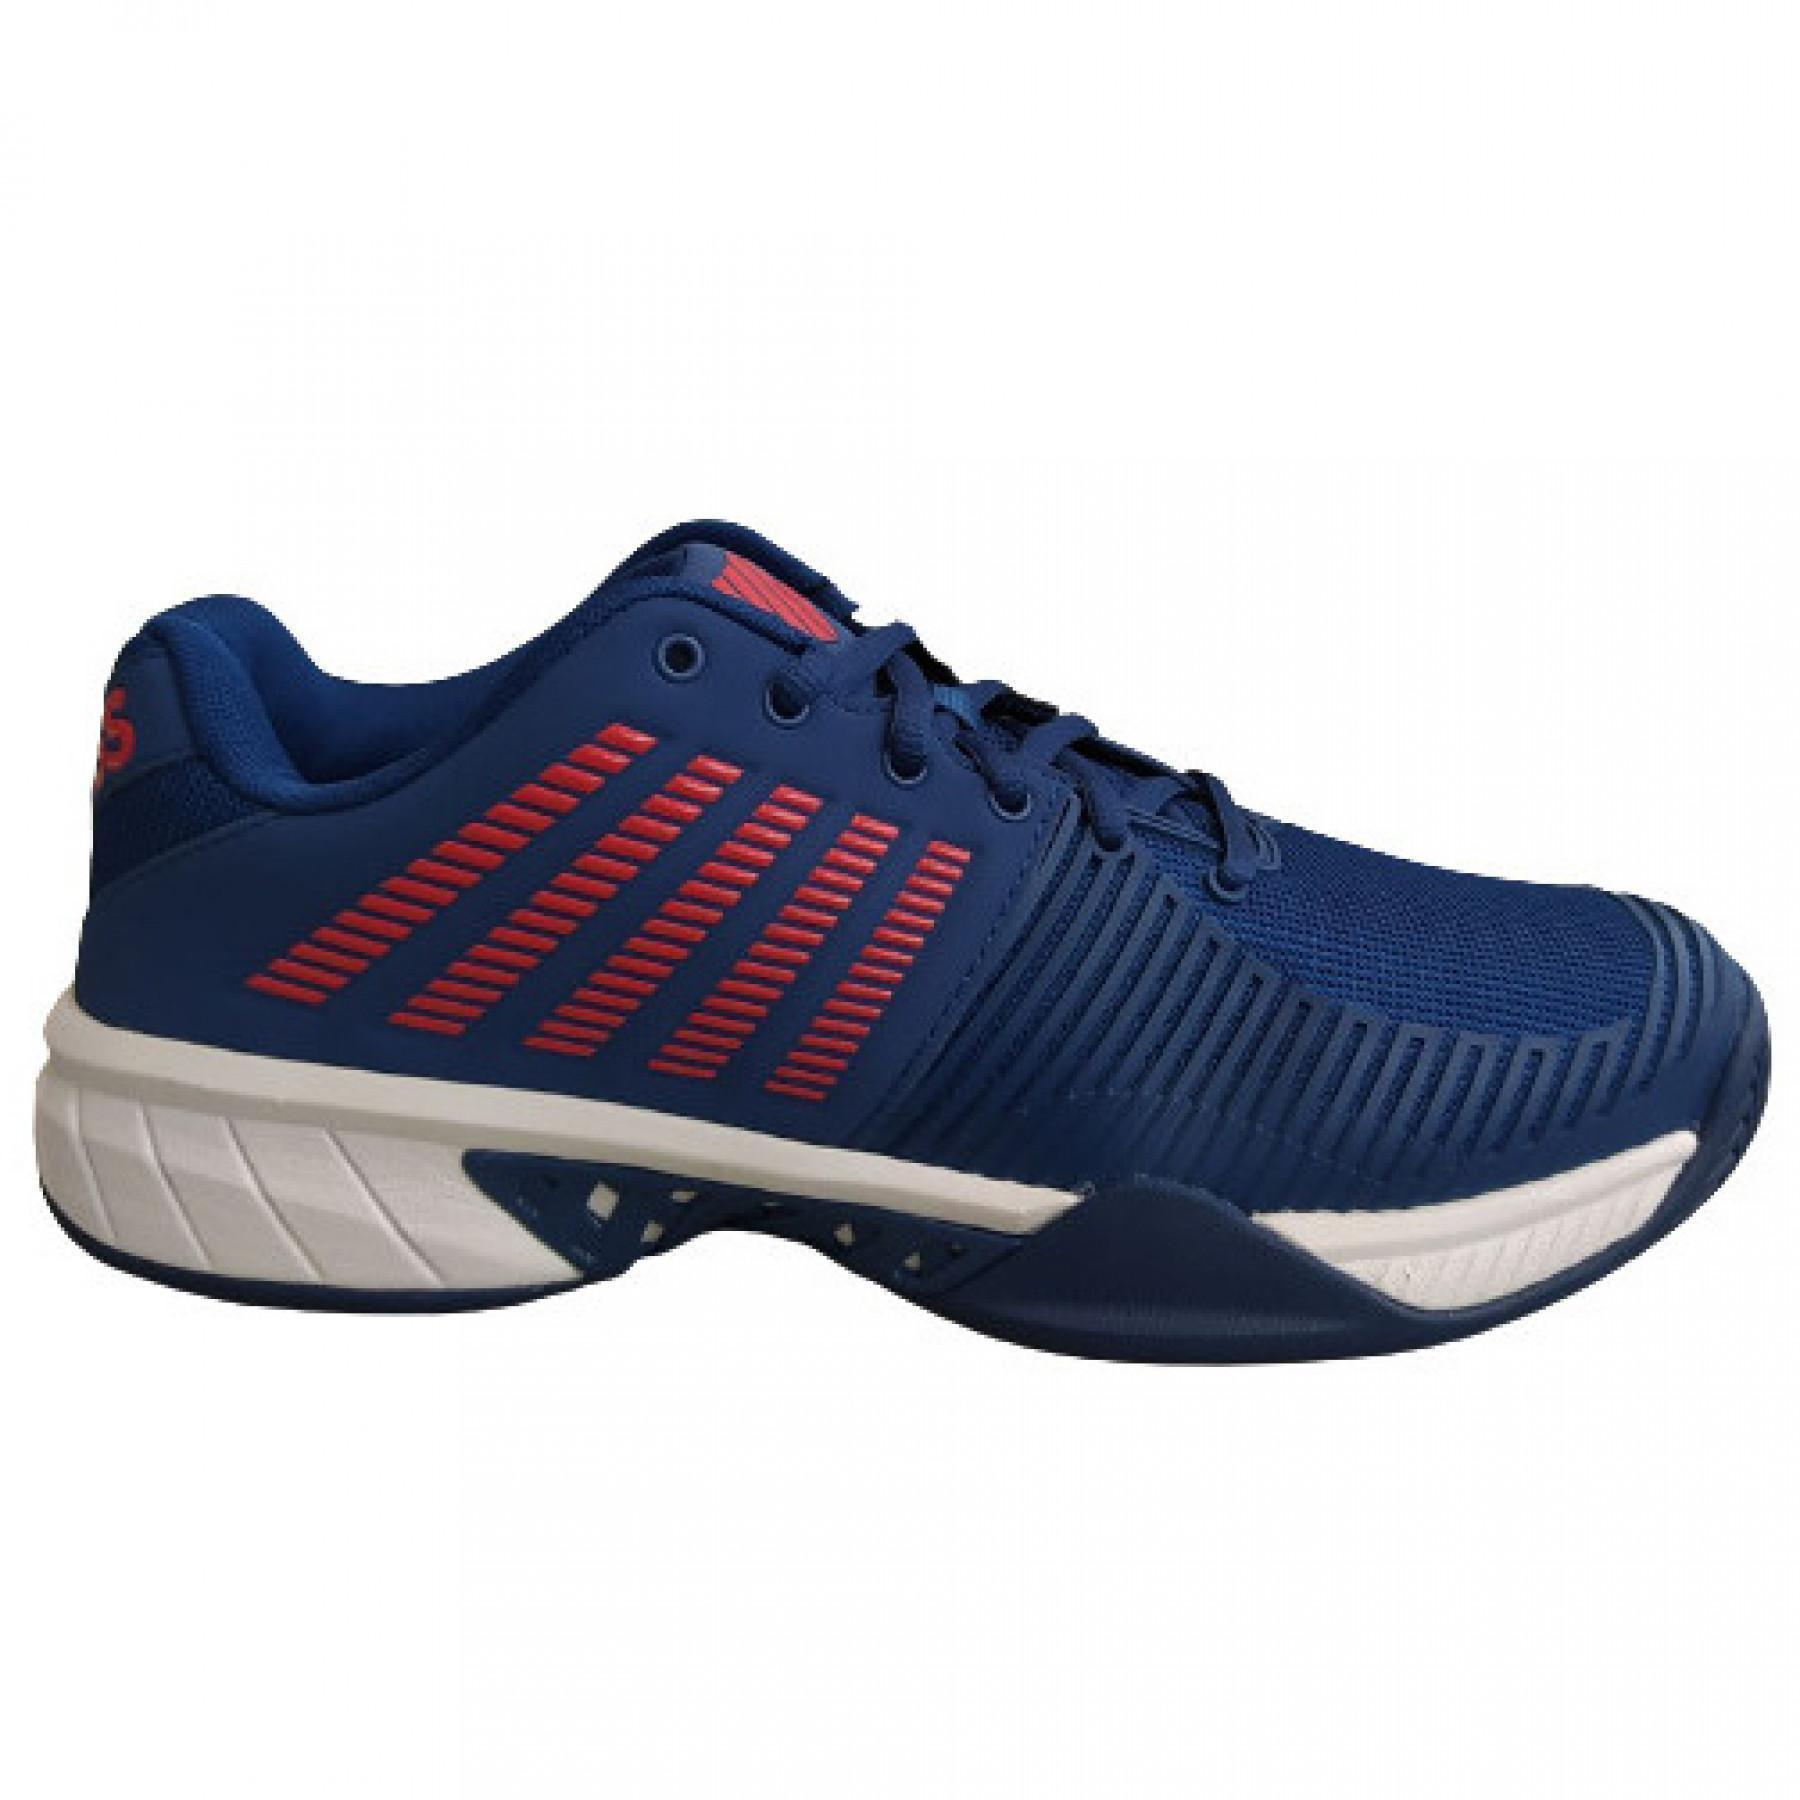 Tennis shoe dunlop tfw express light 2